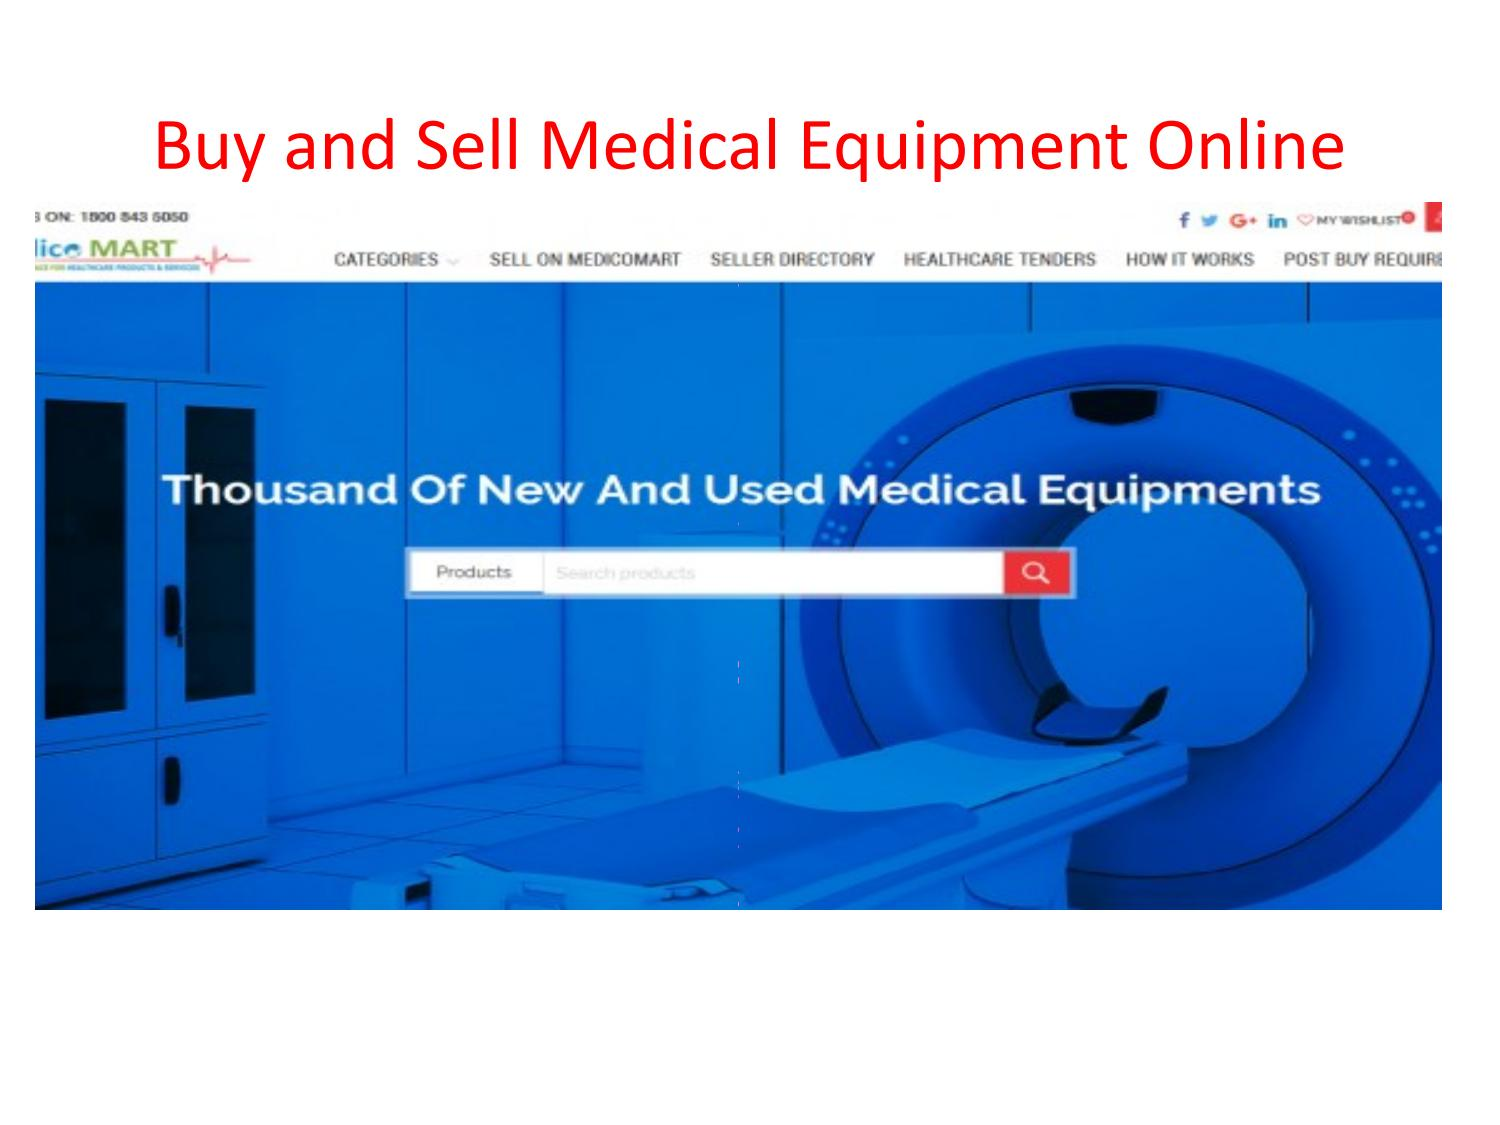 Buy and sell medical equipment online productes by